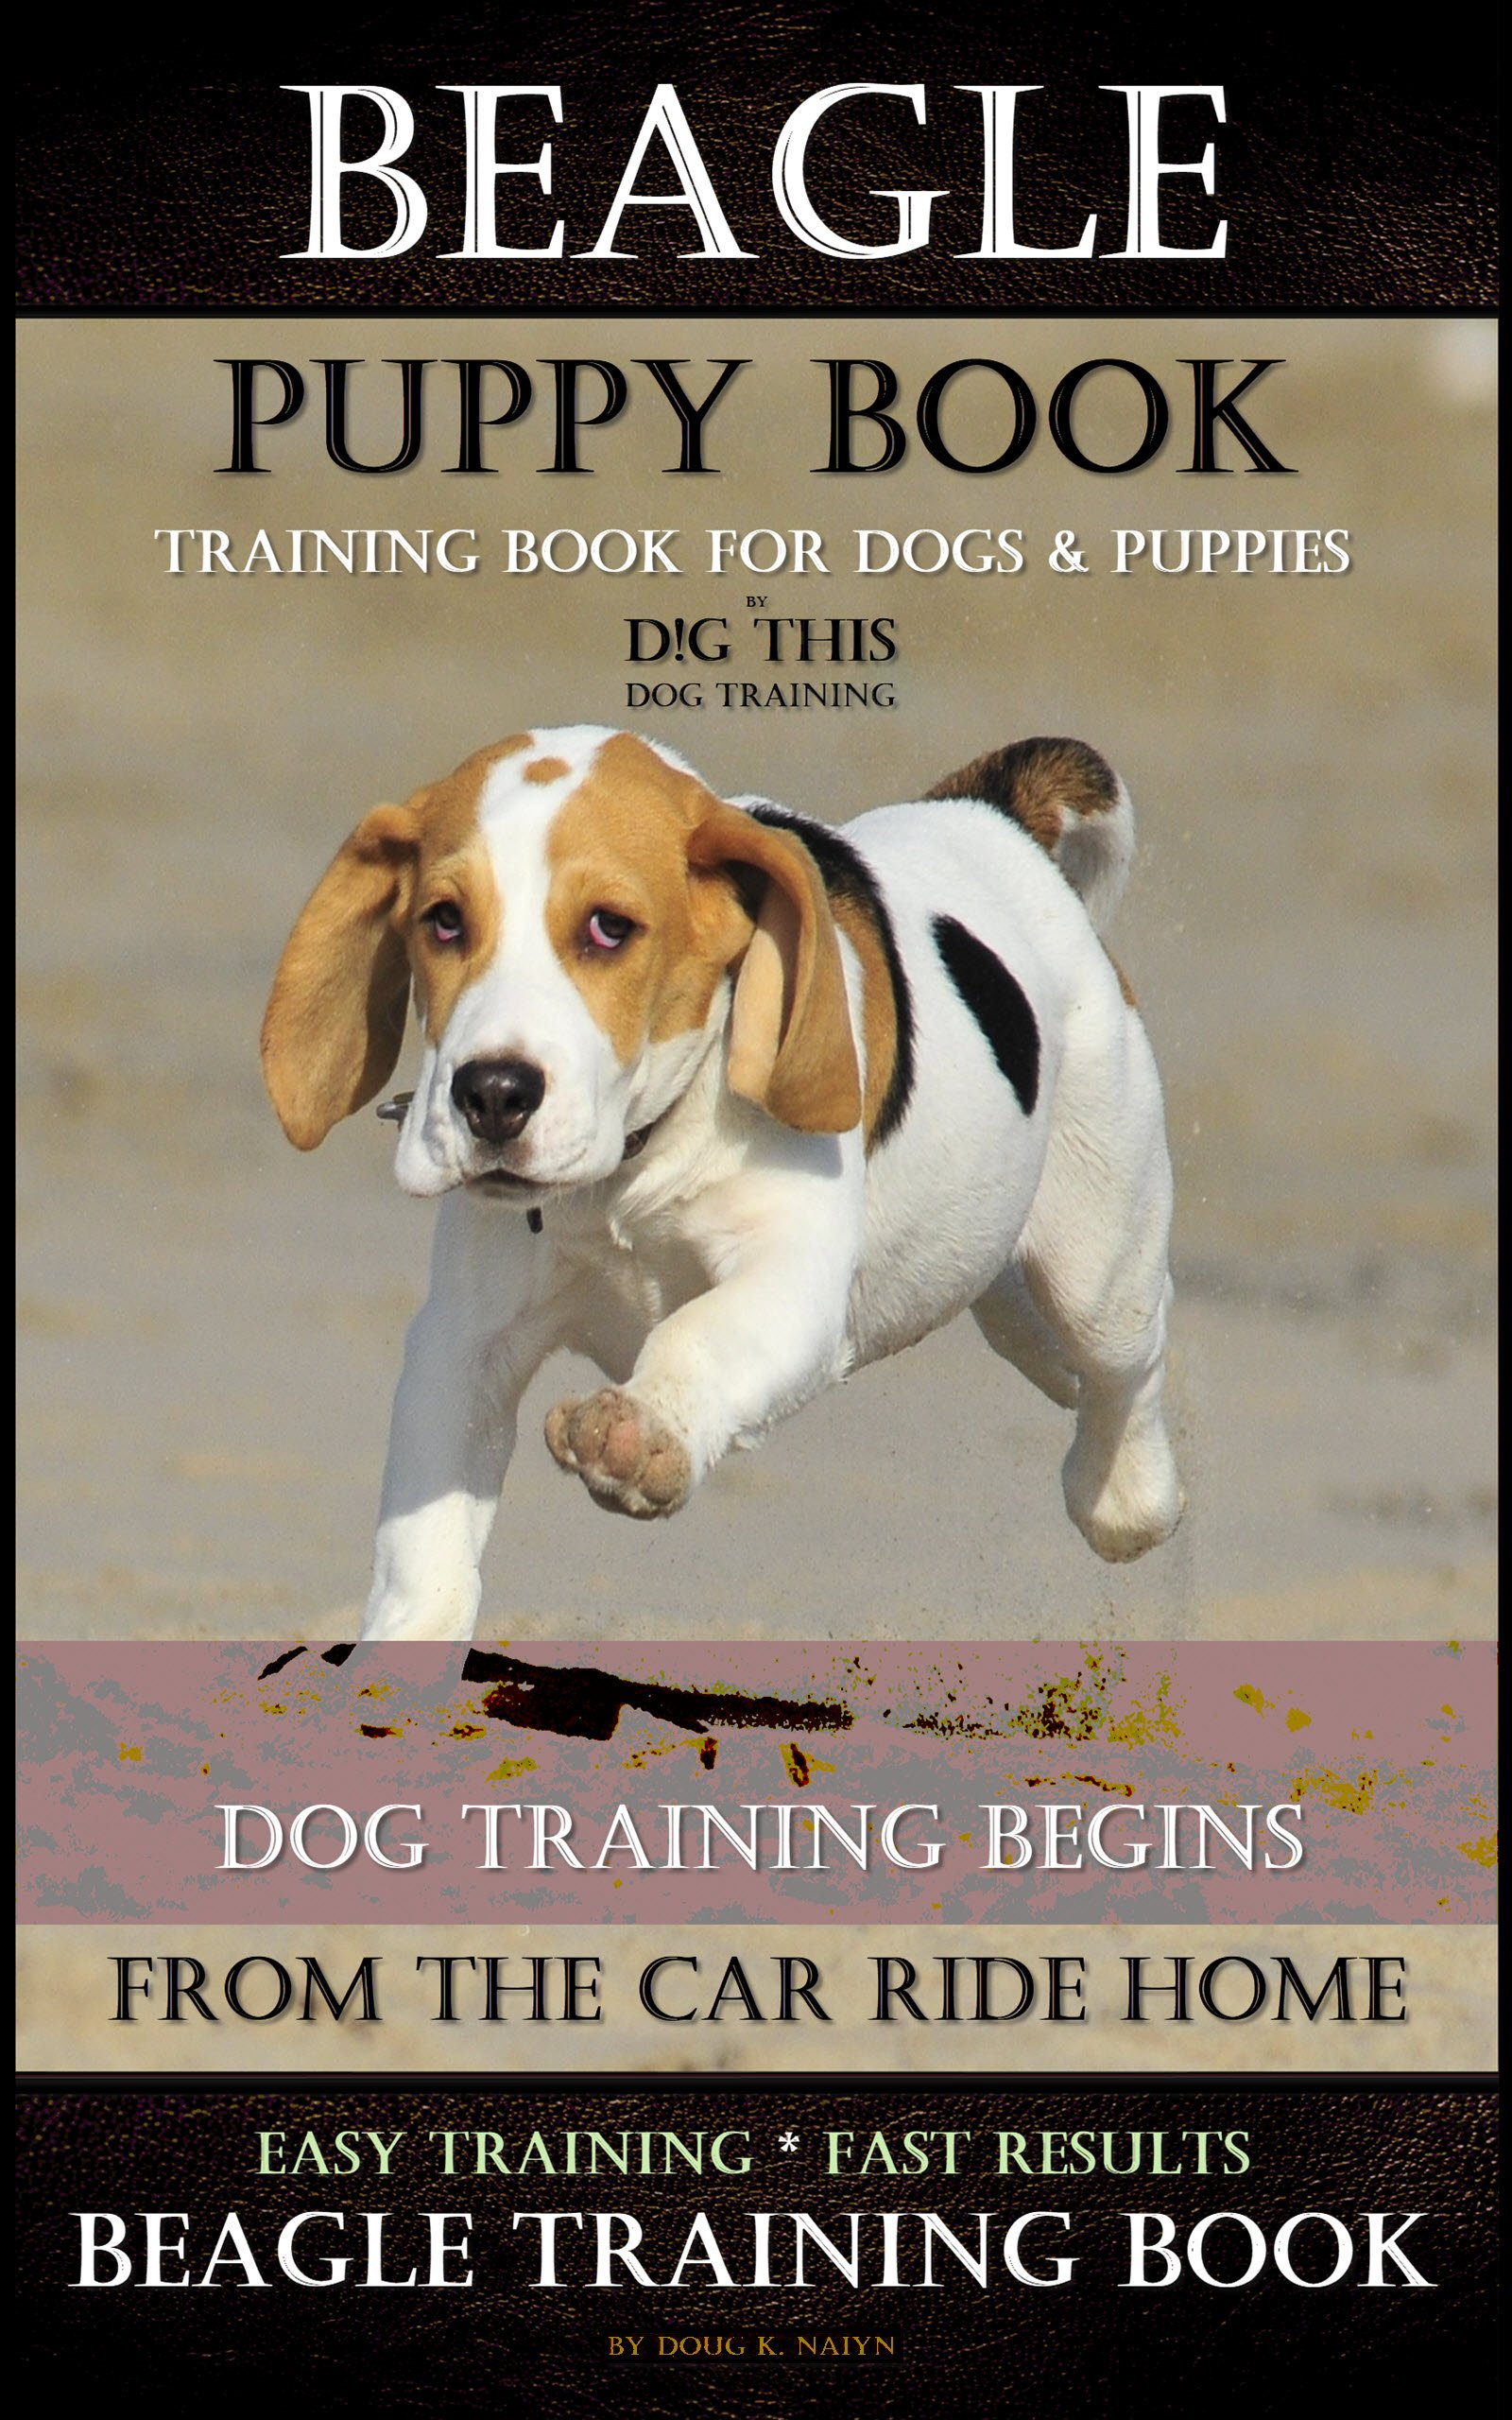 Beagle Puppy Book Training Book for Dogs & Puppies By D!G THIS DOG Training: Dog Training Begins From the Car Ride Home, Easy Training * Fast Results, Beagle Training Book